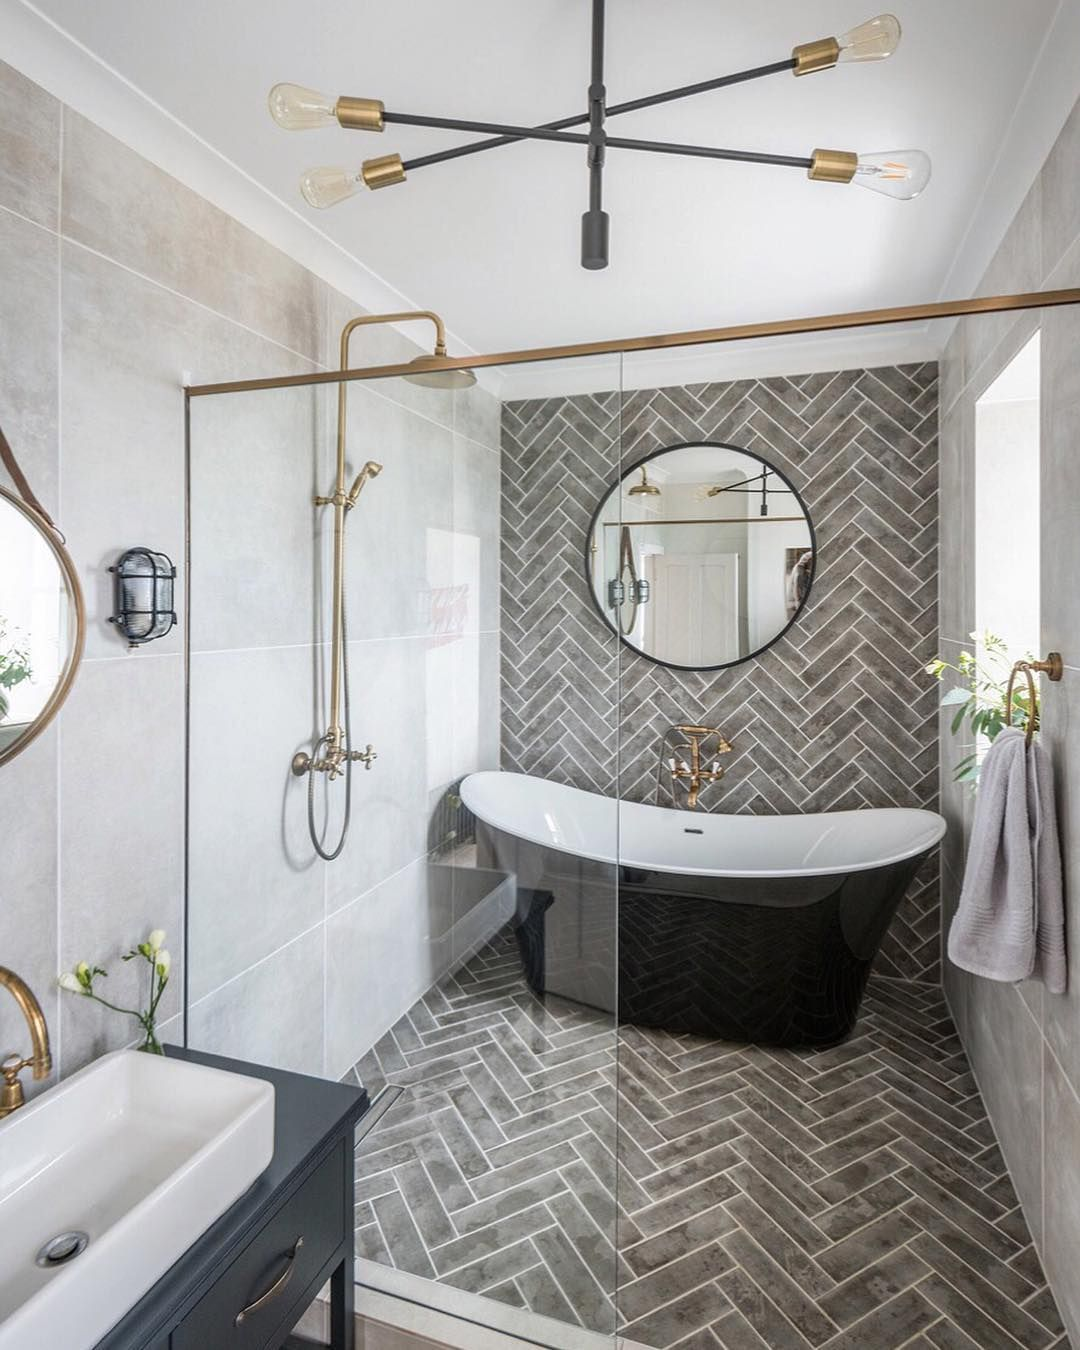 Extravagant master bathroom - complete with freestanding ... on Wet Room With Freestanding Tub  id=89855